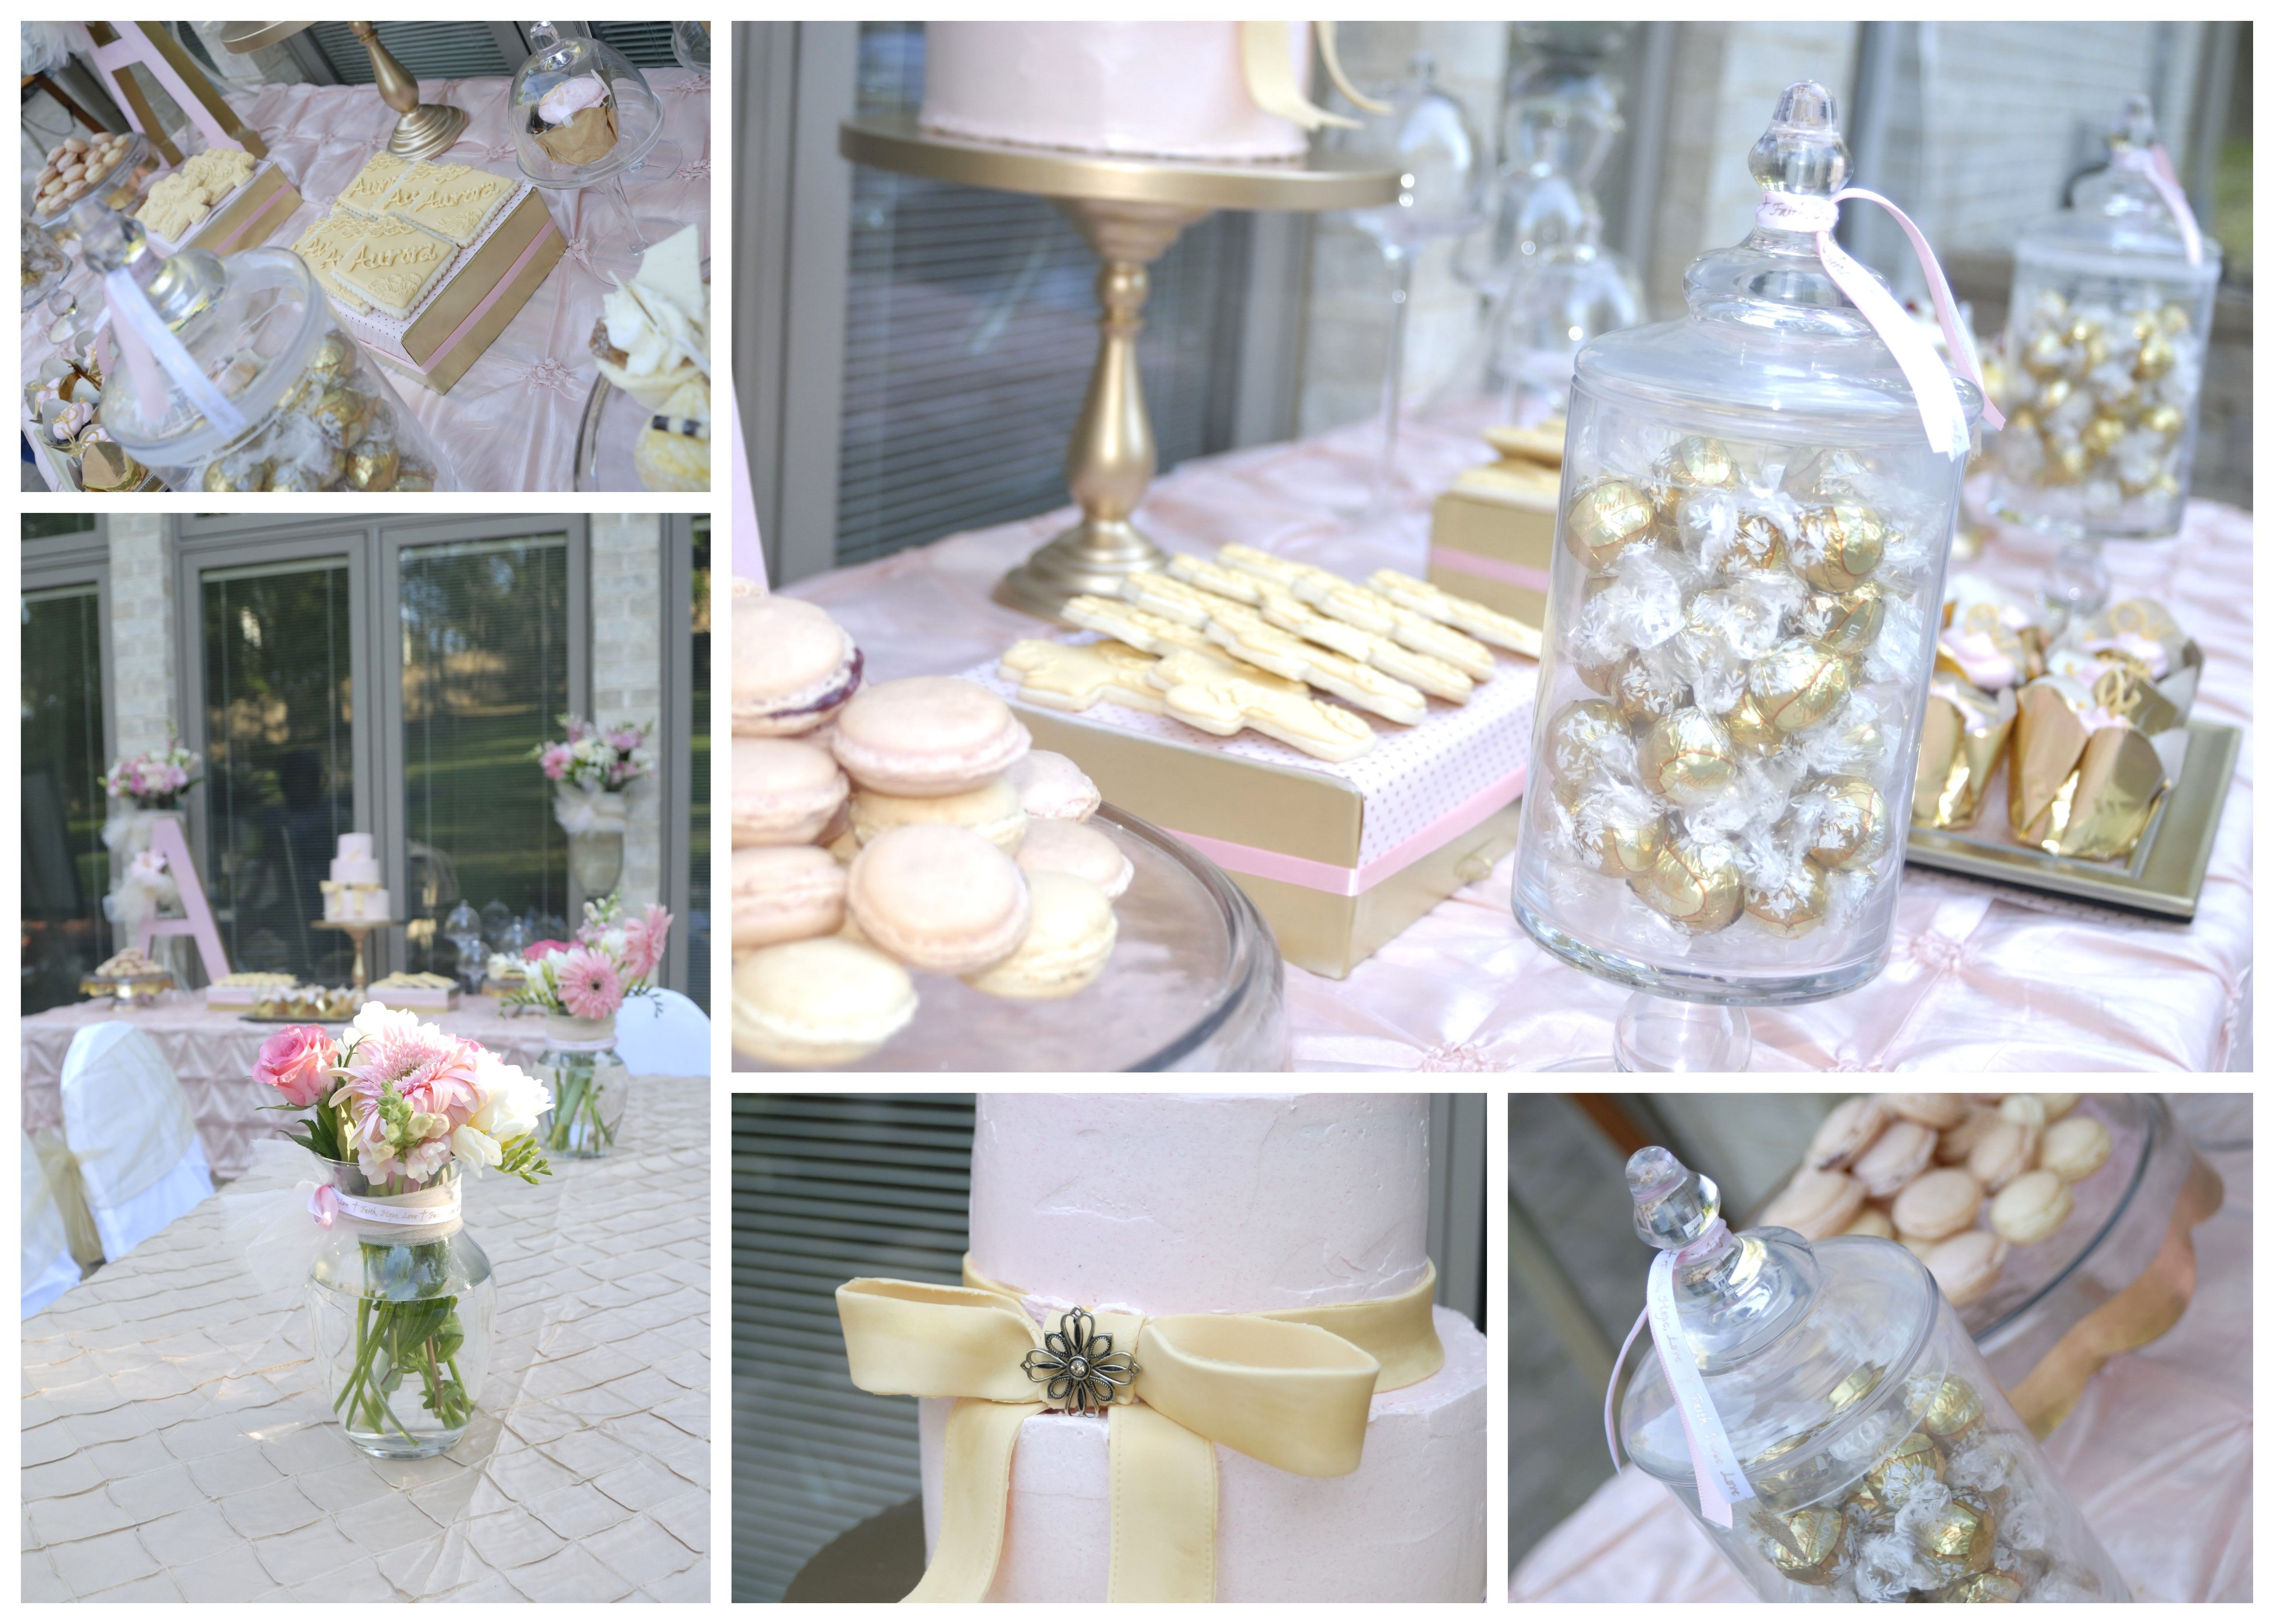 christening table decoration ideas | Dessert choices adorning the table were cake macarons cupcakes & christening table decoration ideas | Dessert choices adorning the ...